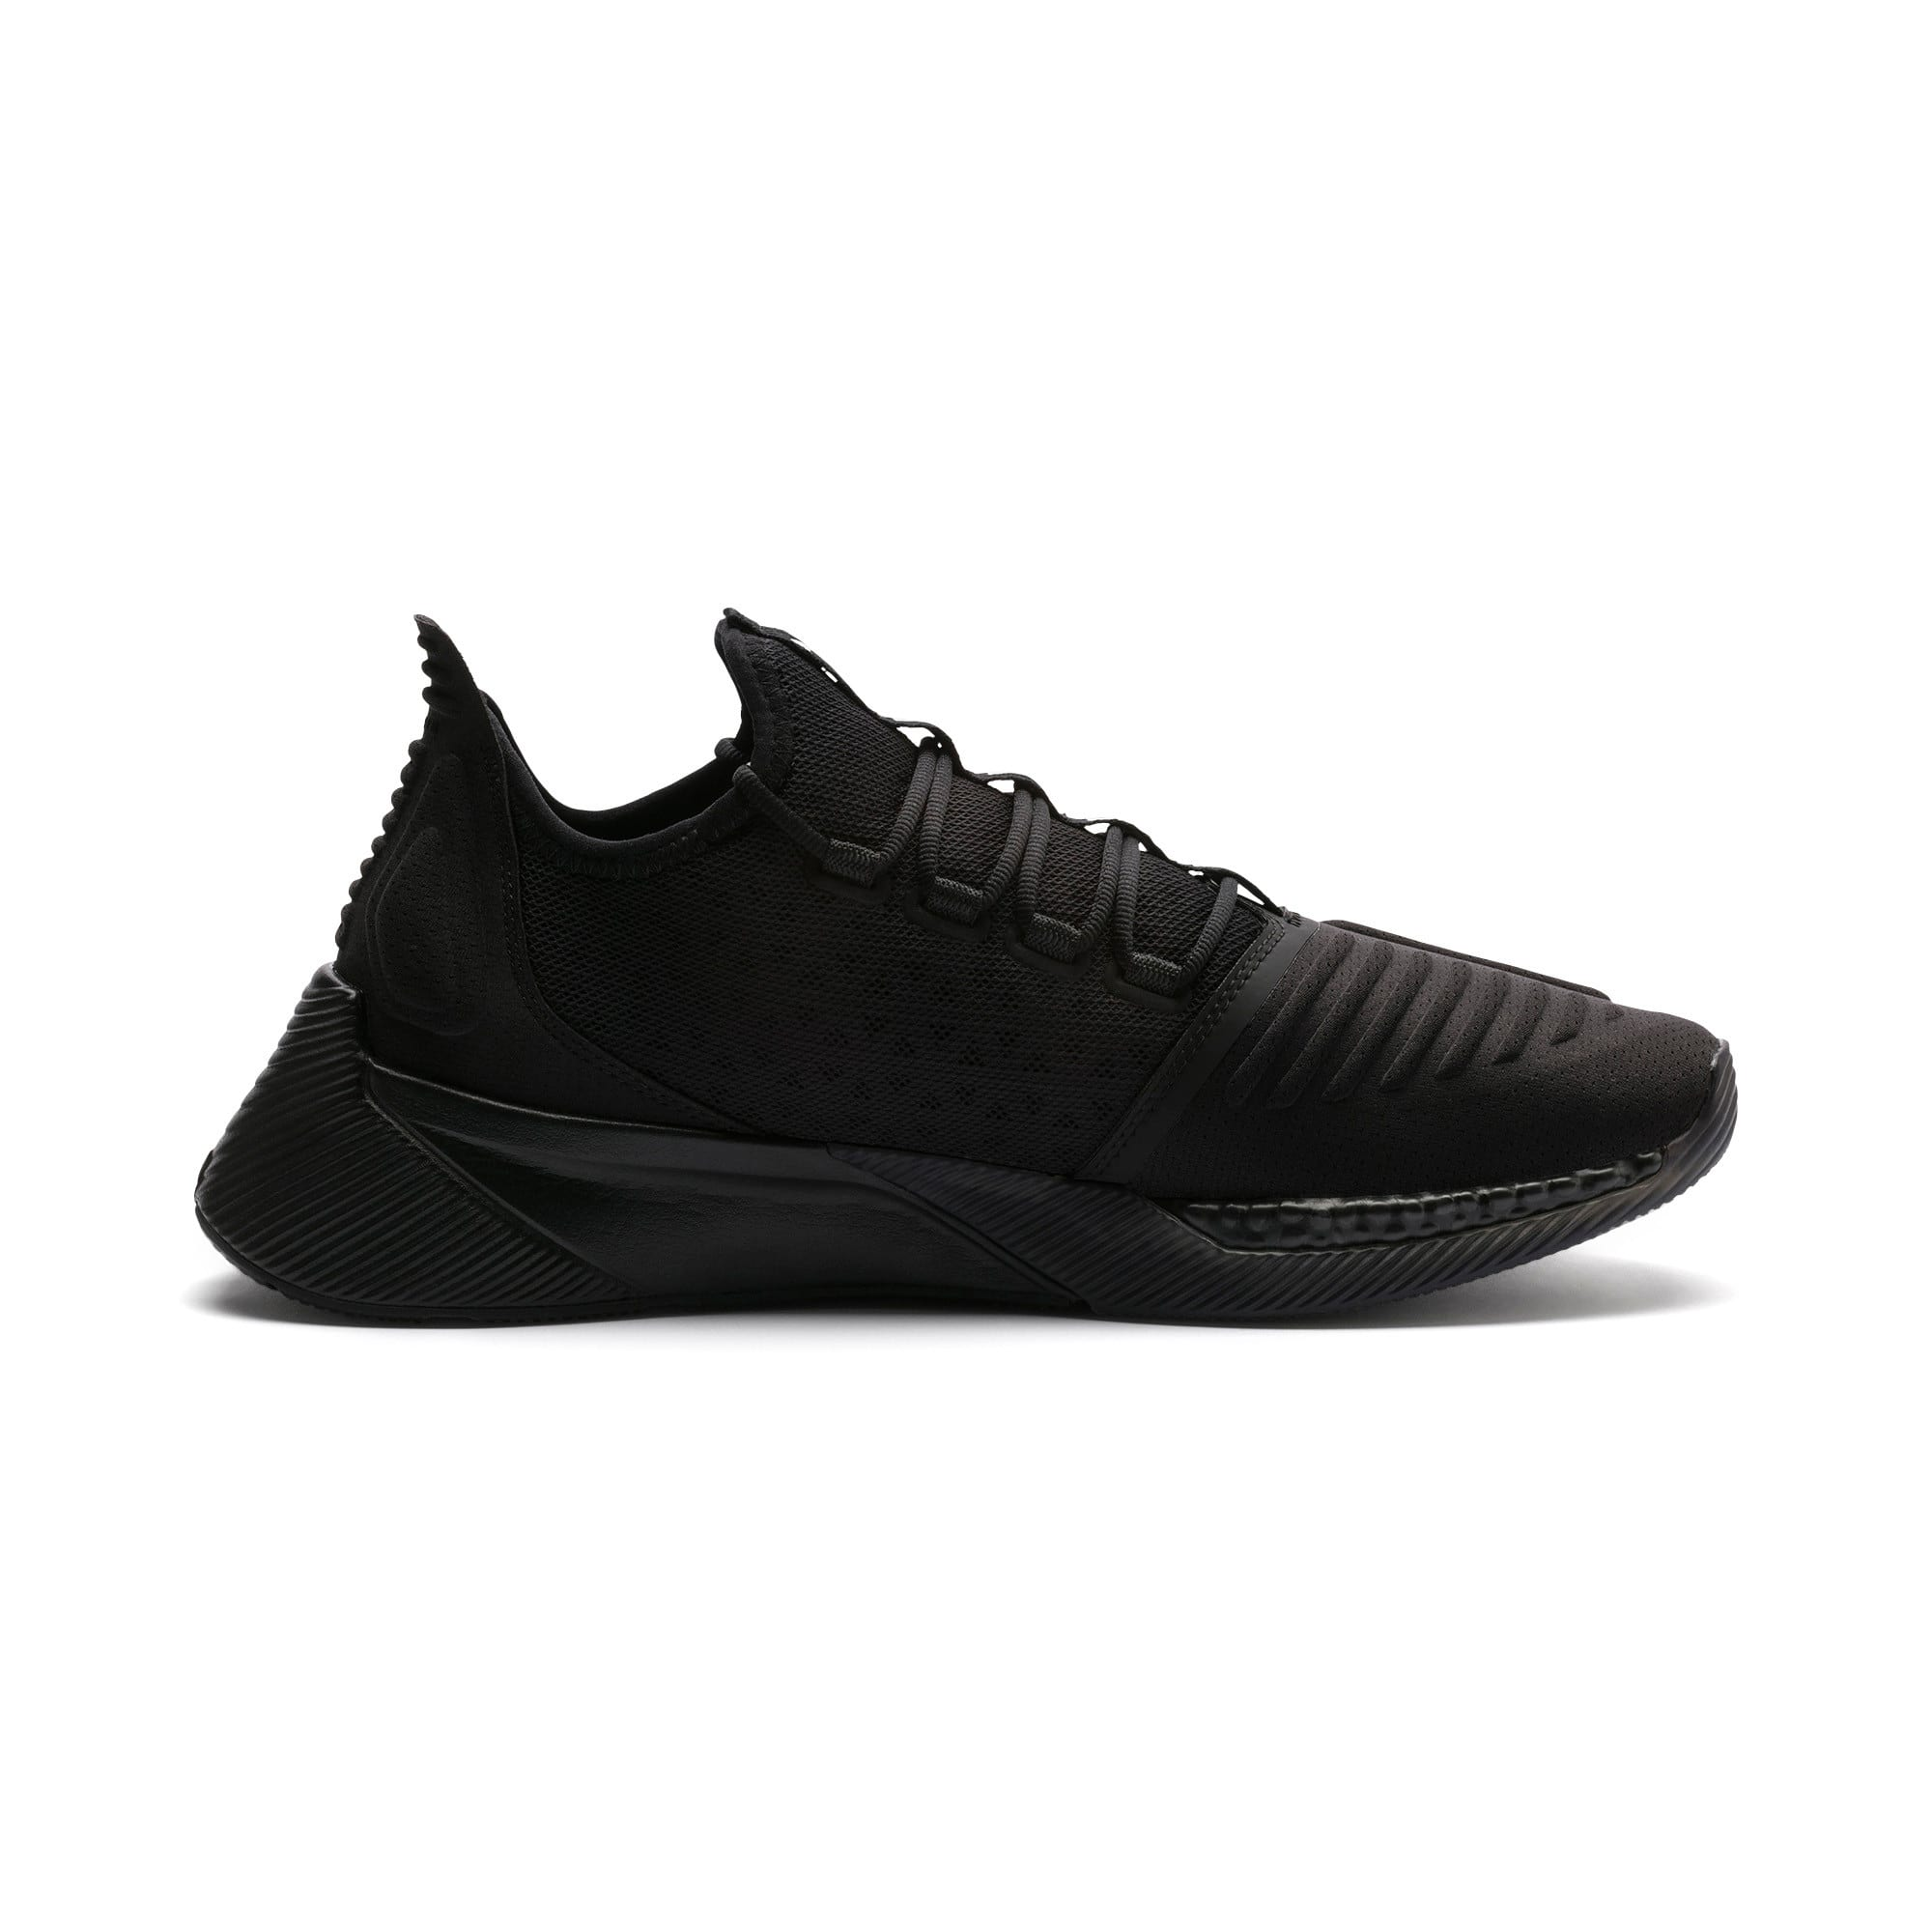 Thumbnail 6 of Xcelerator Running Shoes, Puma Black-Puma Black, medium